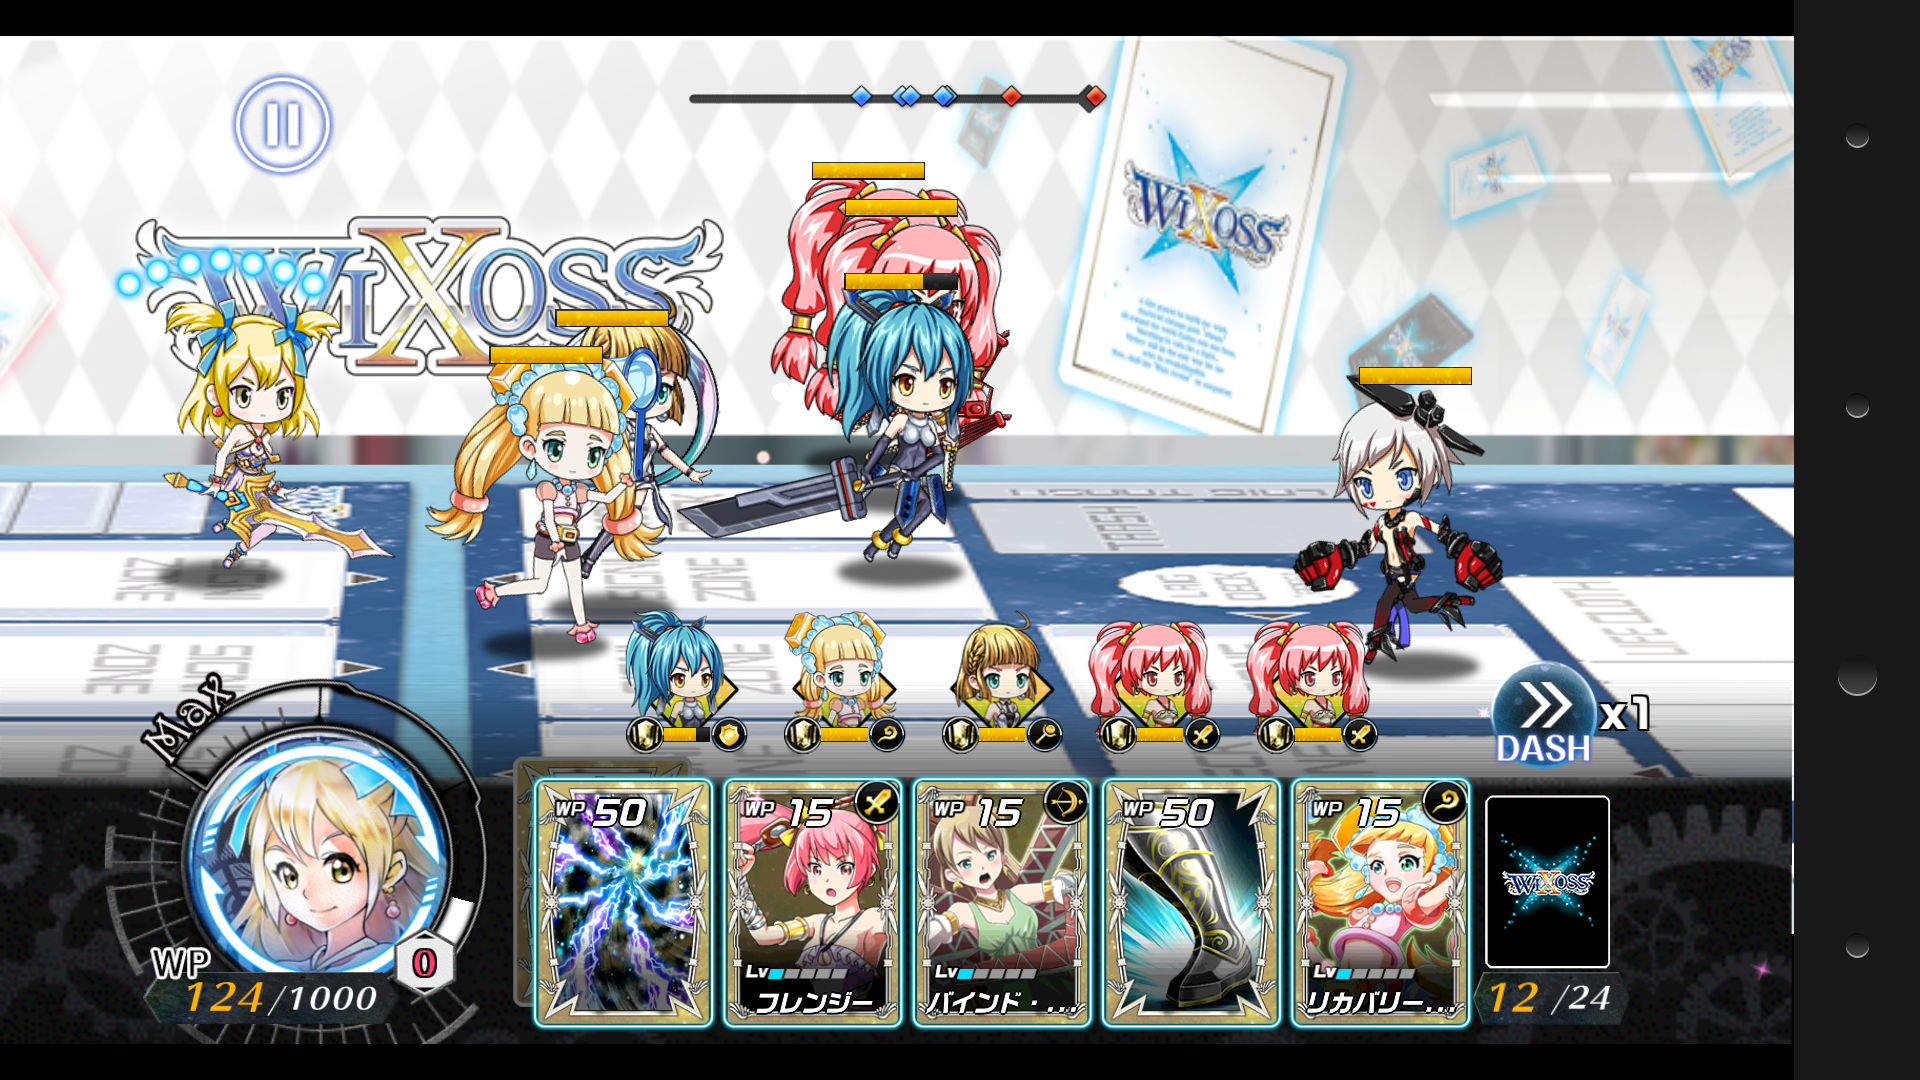 selector battle with WIXOSS androidアプリスクリーンショット1